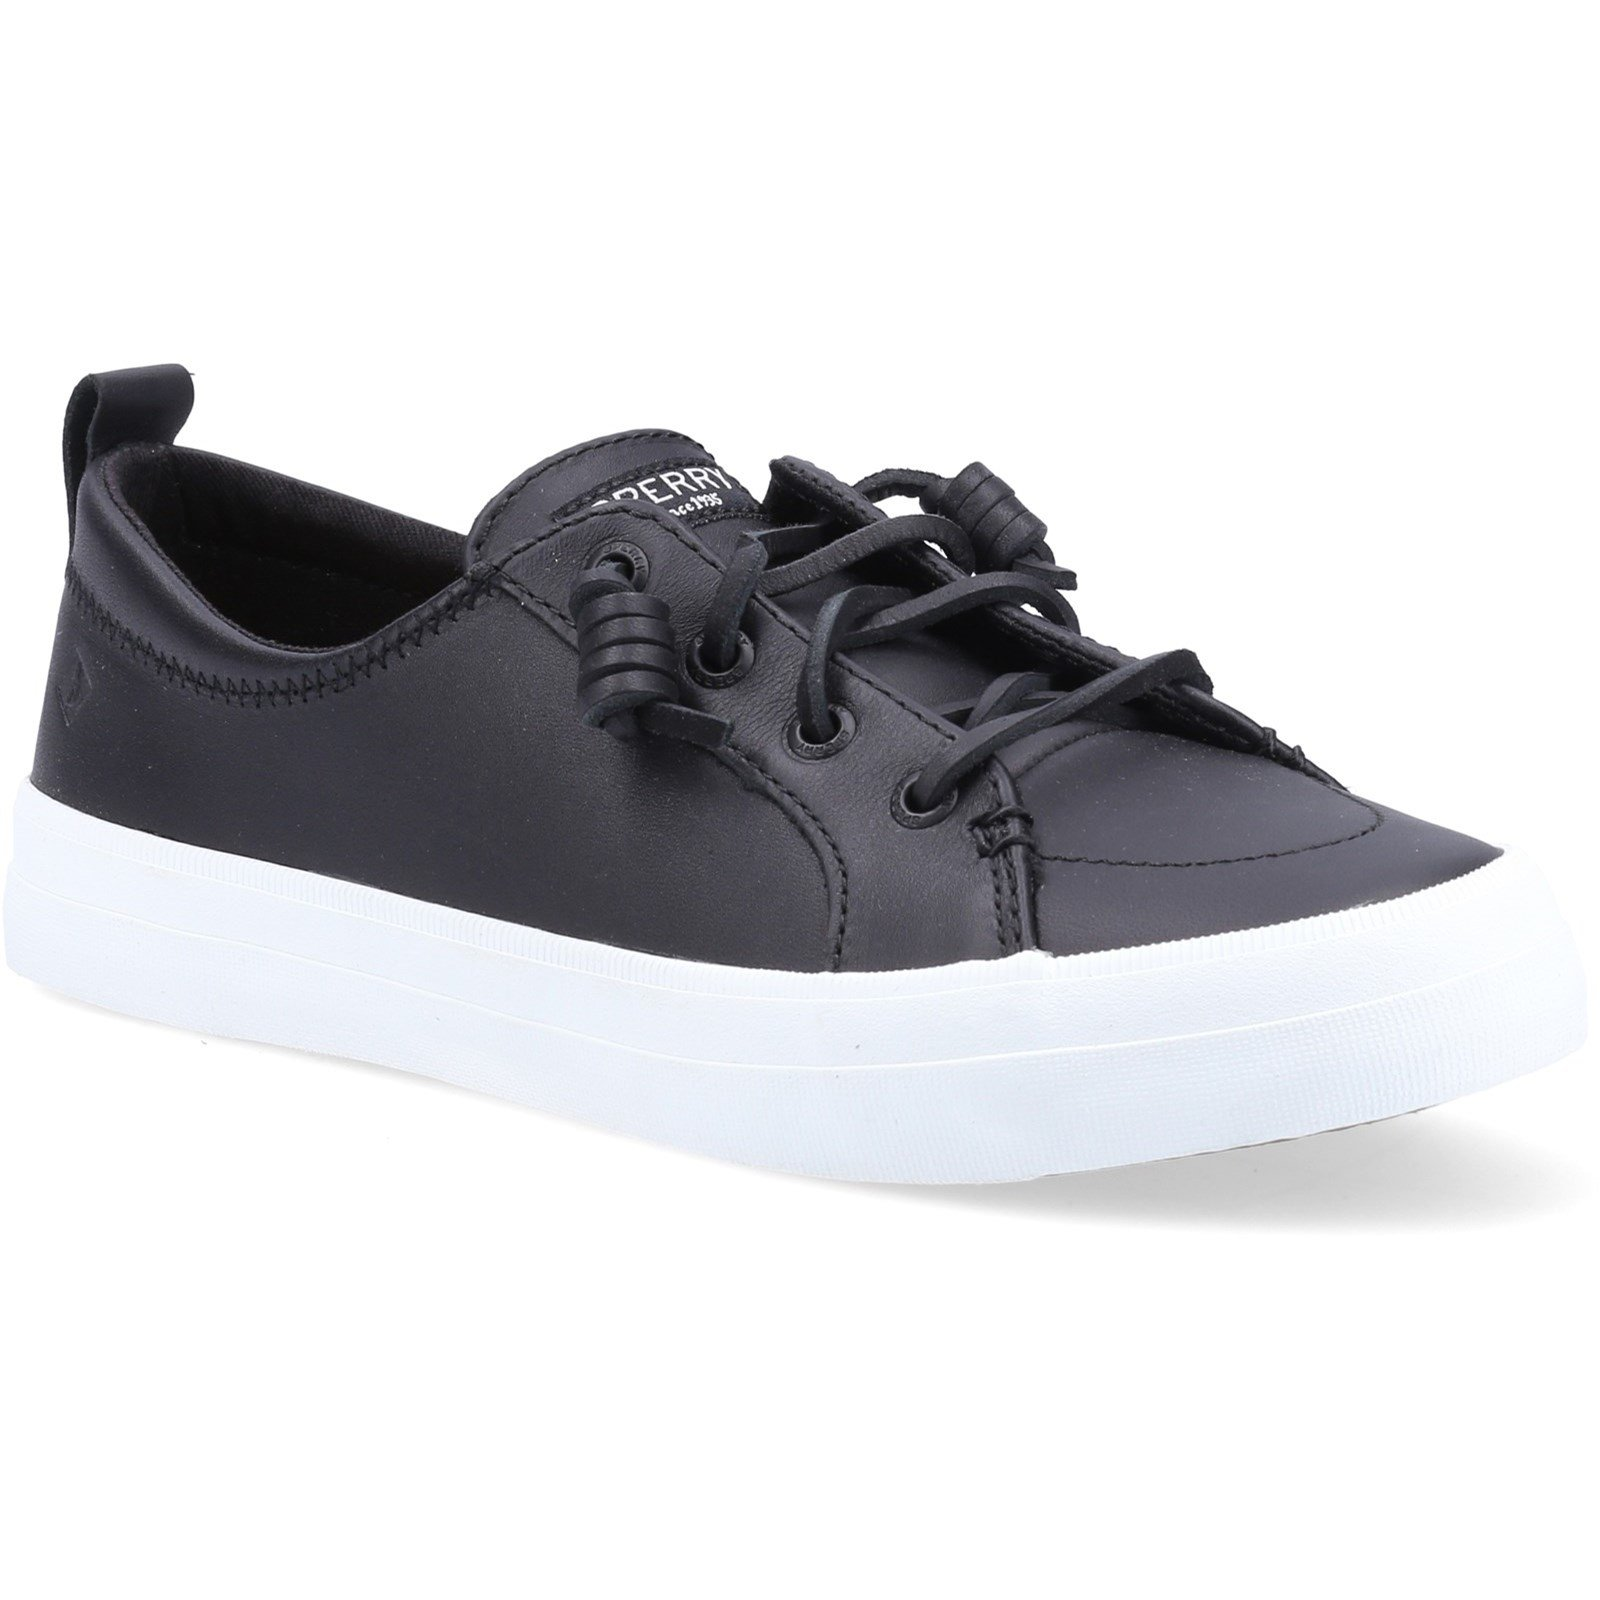 Sperry Women's Crest Vibe Leather Trainers Black 32404 - Black 3